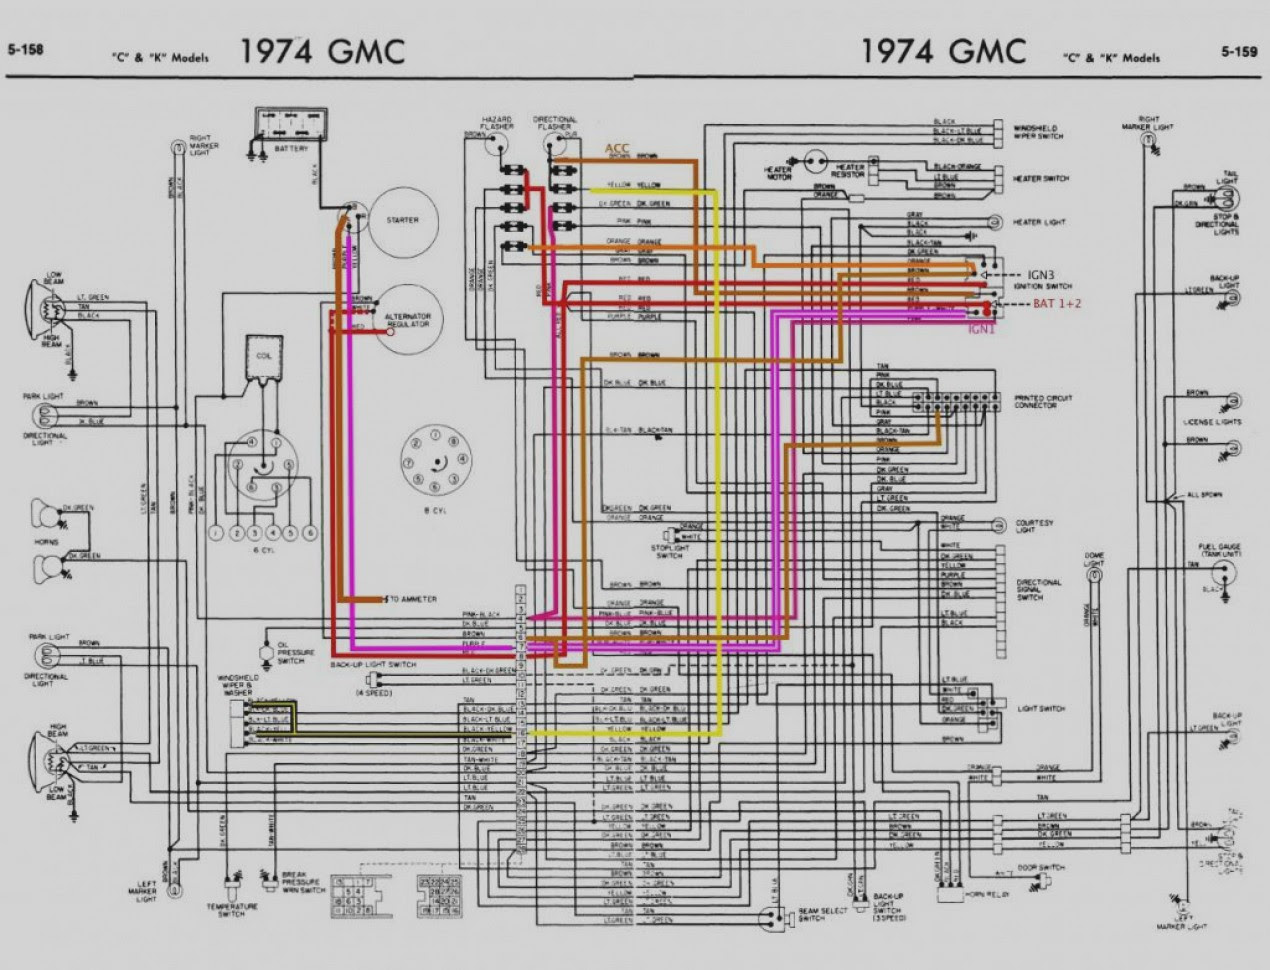 1974 Chevy C10 Wiring Diagram Wiring Diagram Multimedia Multimedia Wallabyviaggi It